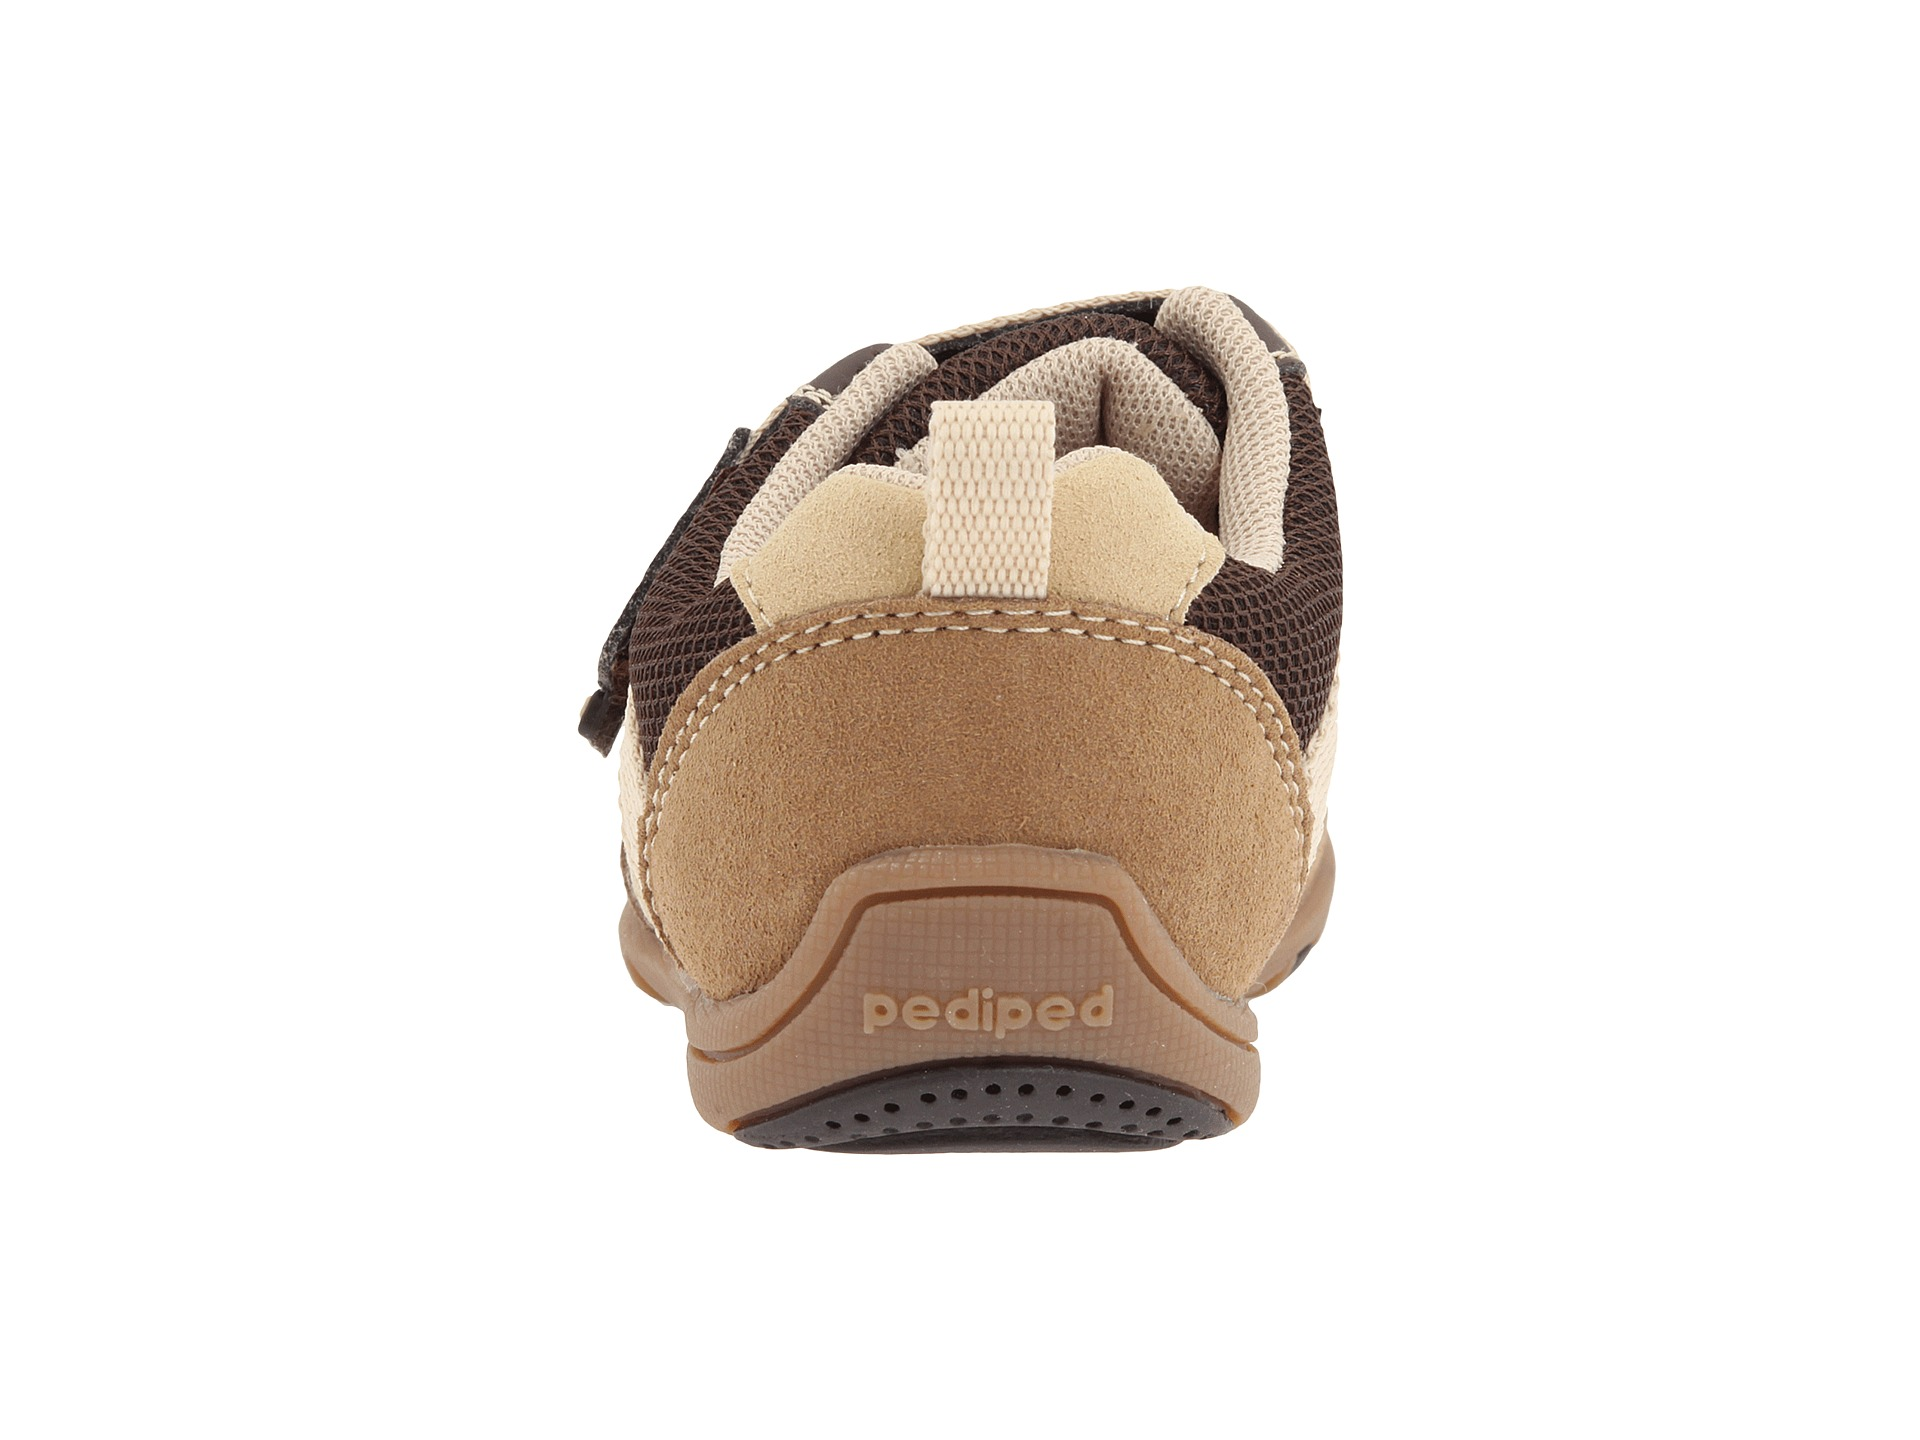 Pediped Toddler Shoes Sale